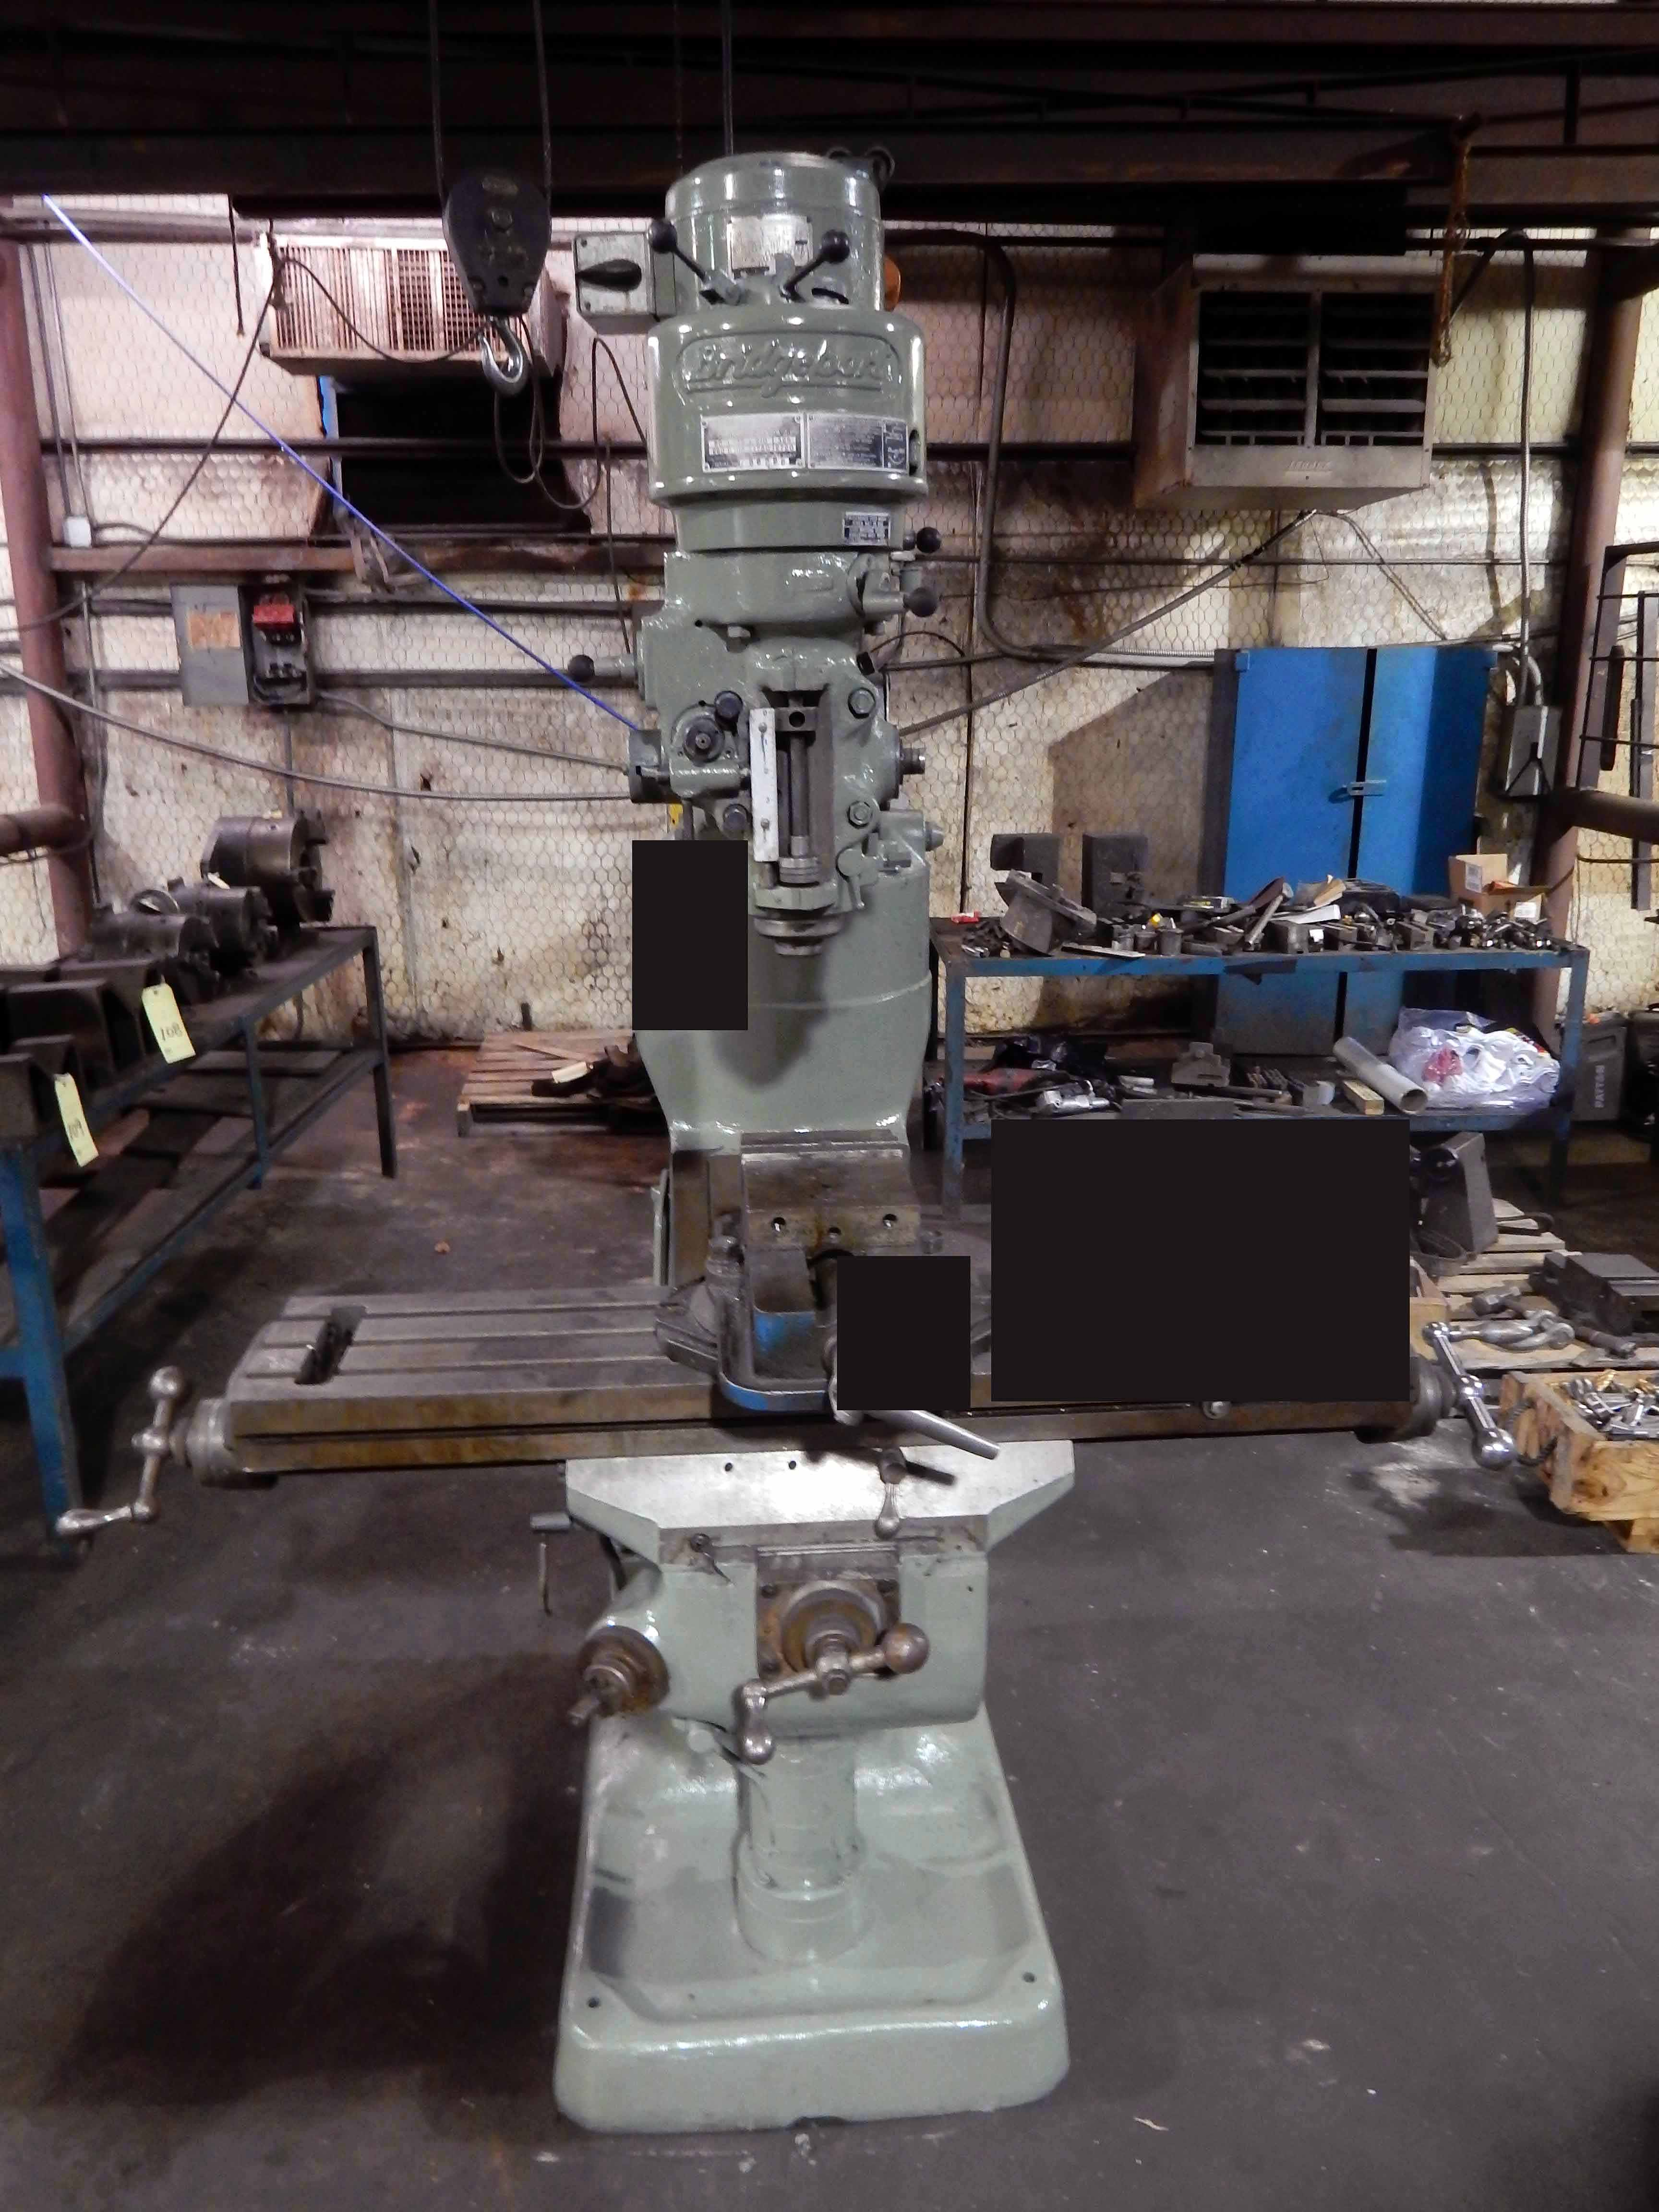 "Lot 51 - VERTICAL TURRET MILL, BRIDGEPORT SERIES T J-HEAD, 9"" x 42"" table, R-8 spdl., 6"" swivel base vise ("